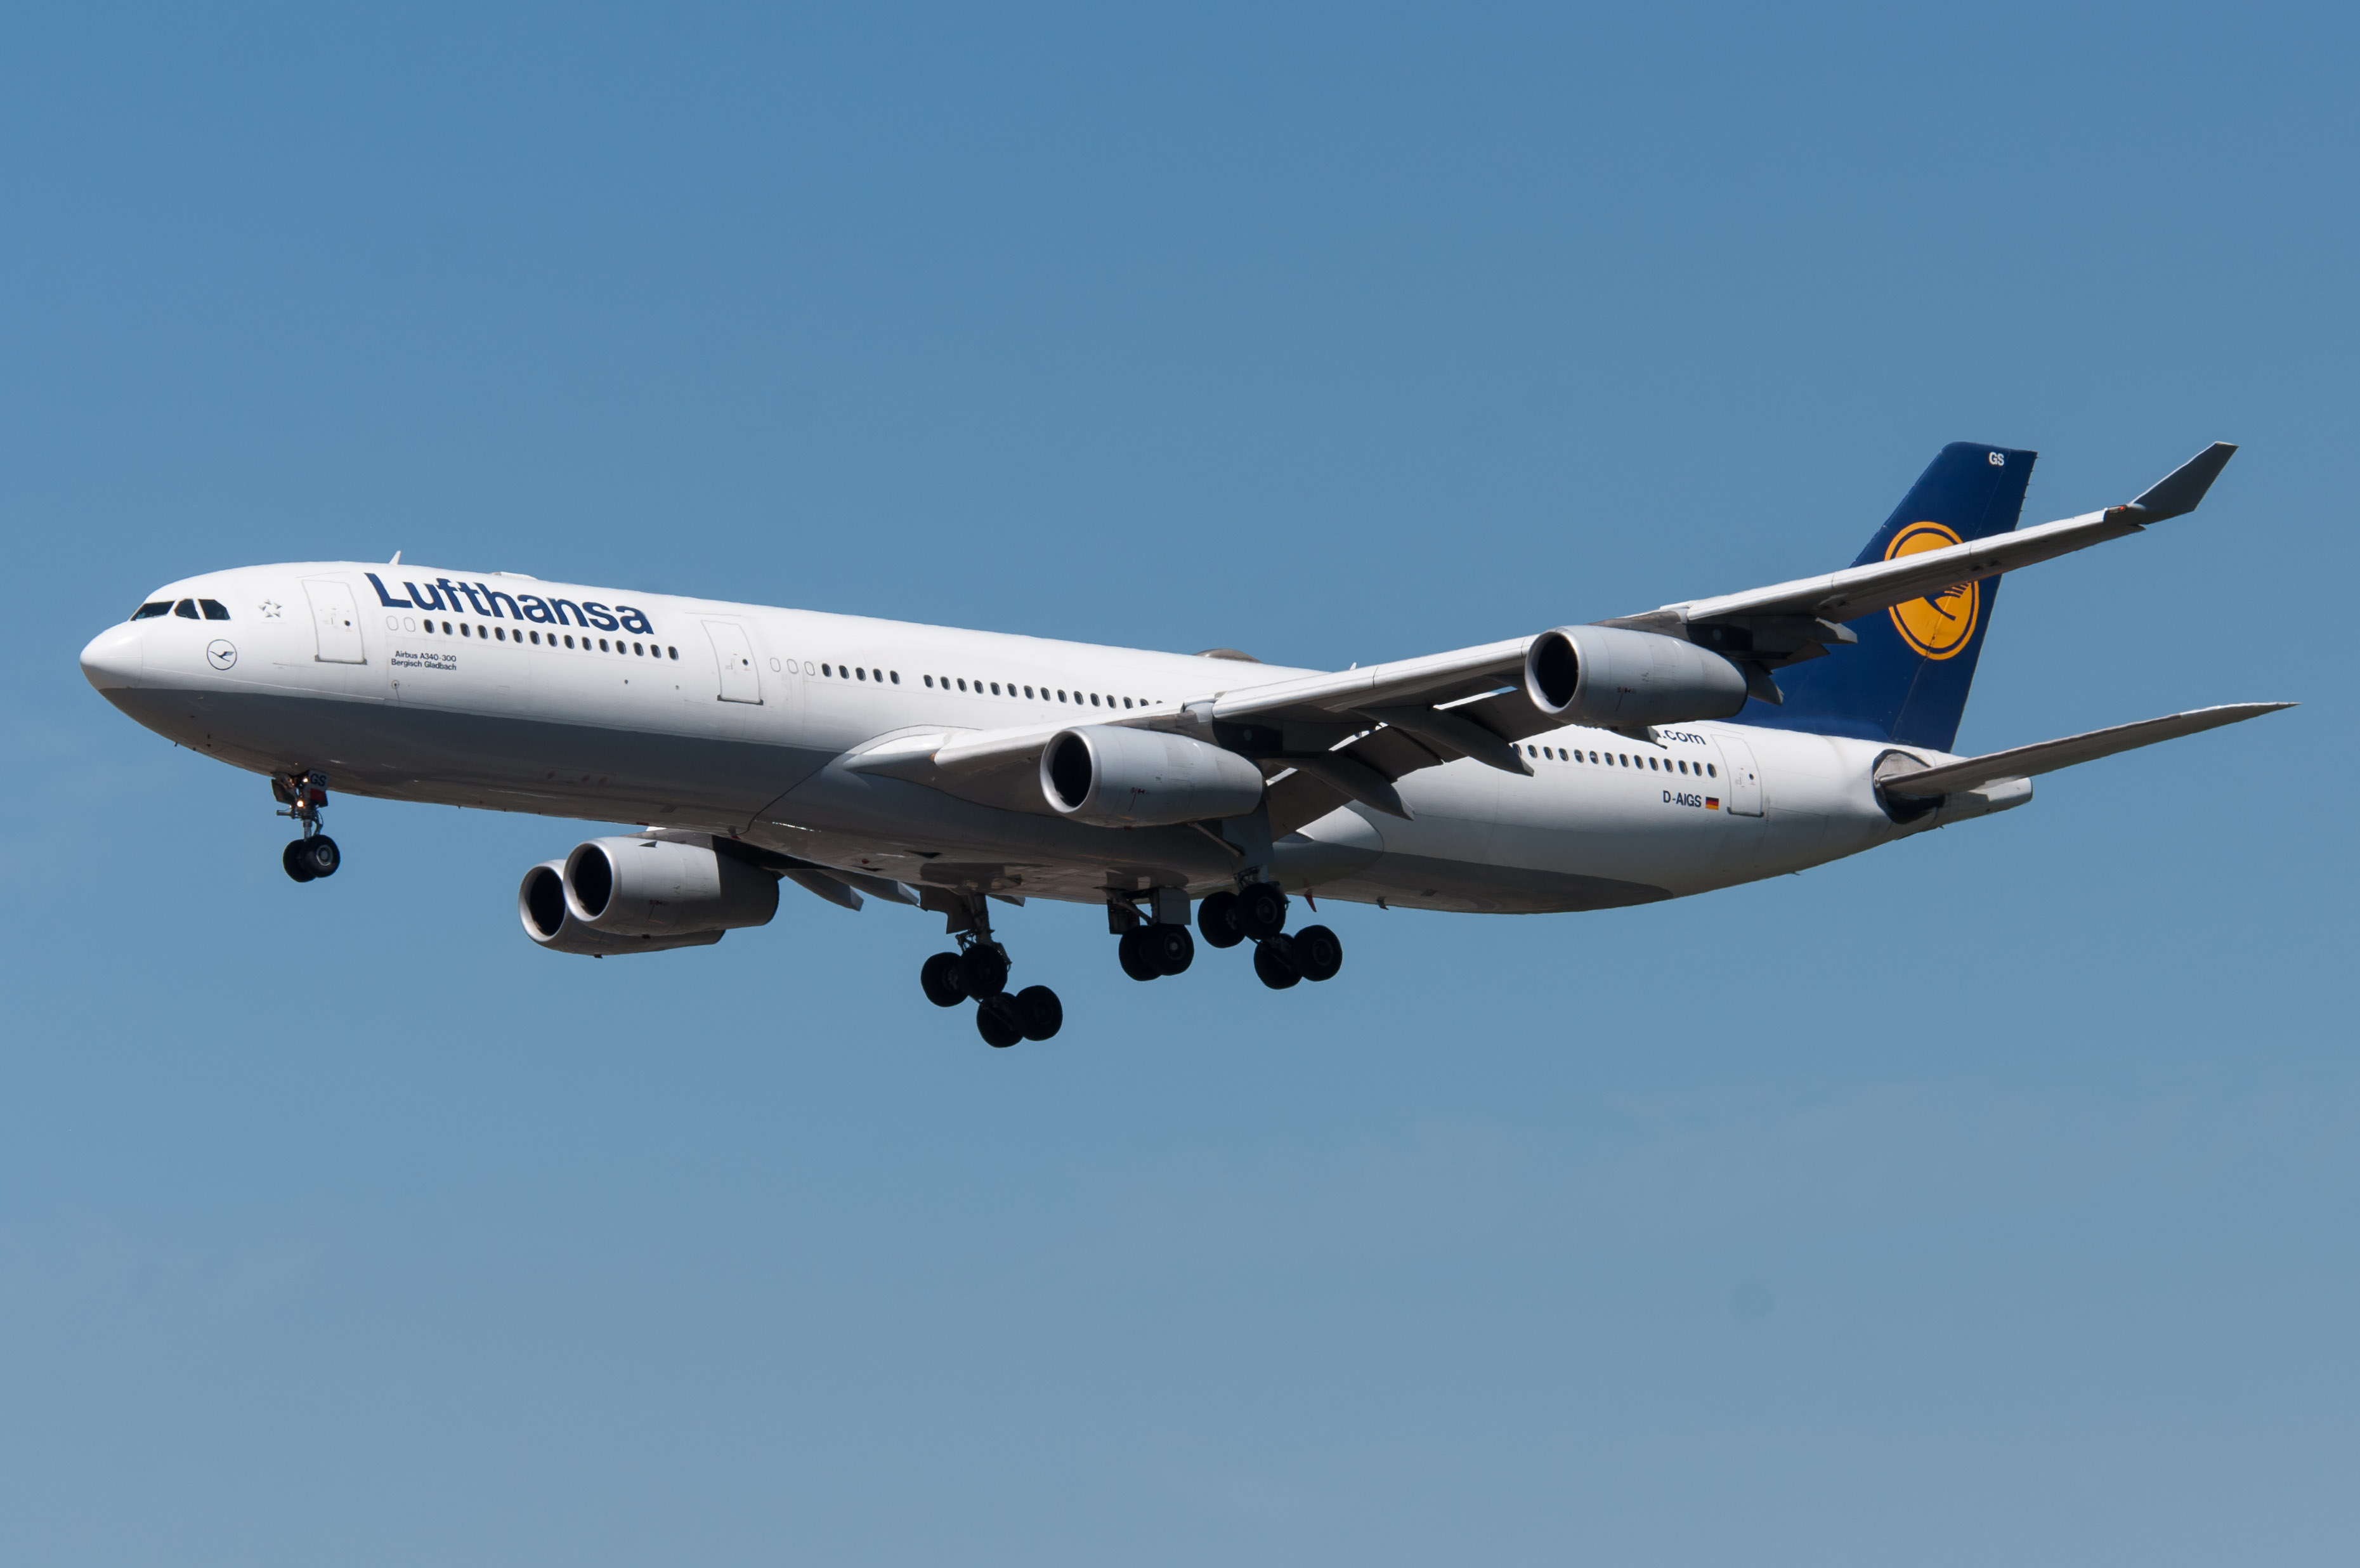 file lufthansa airbus a340 313 d wikipedia. Black Bedroom Furniture Sets. Home Design Ideas